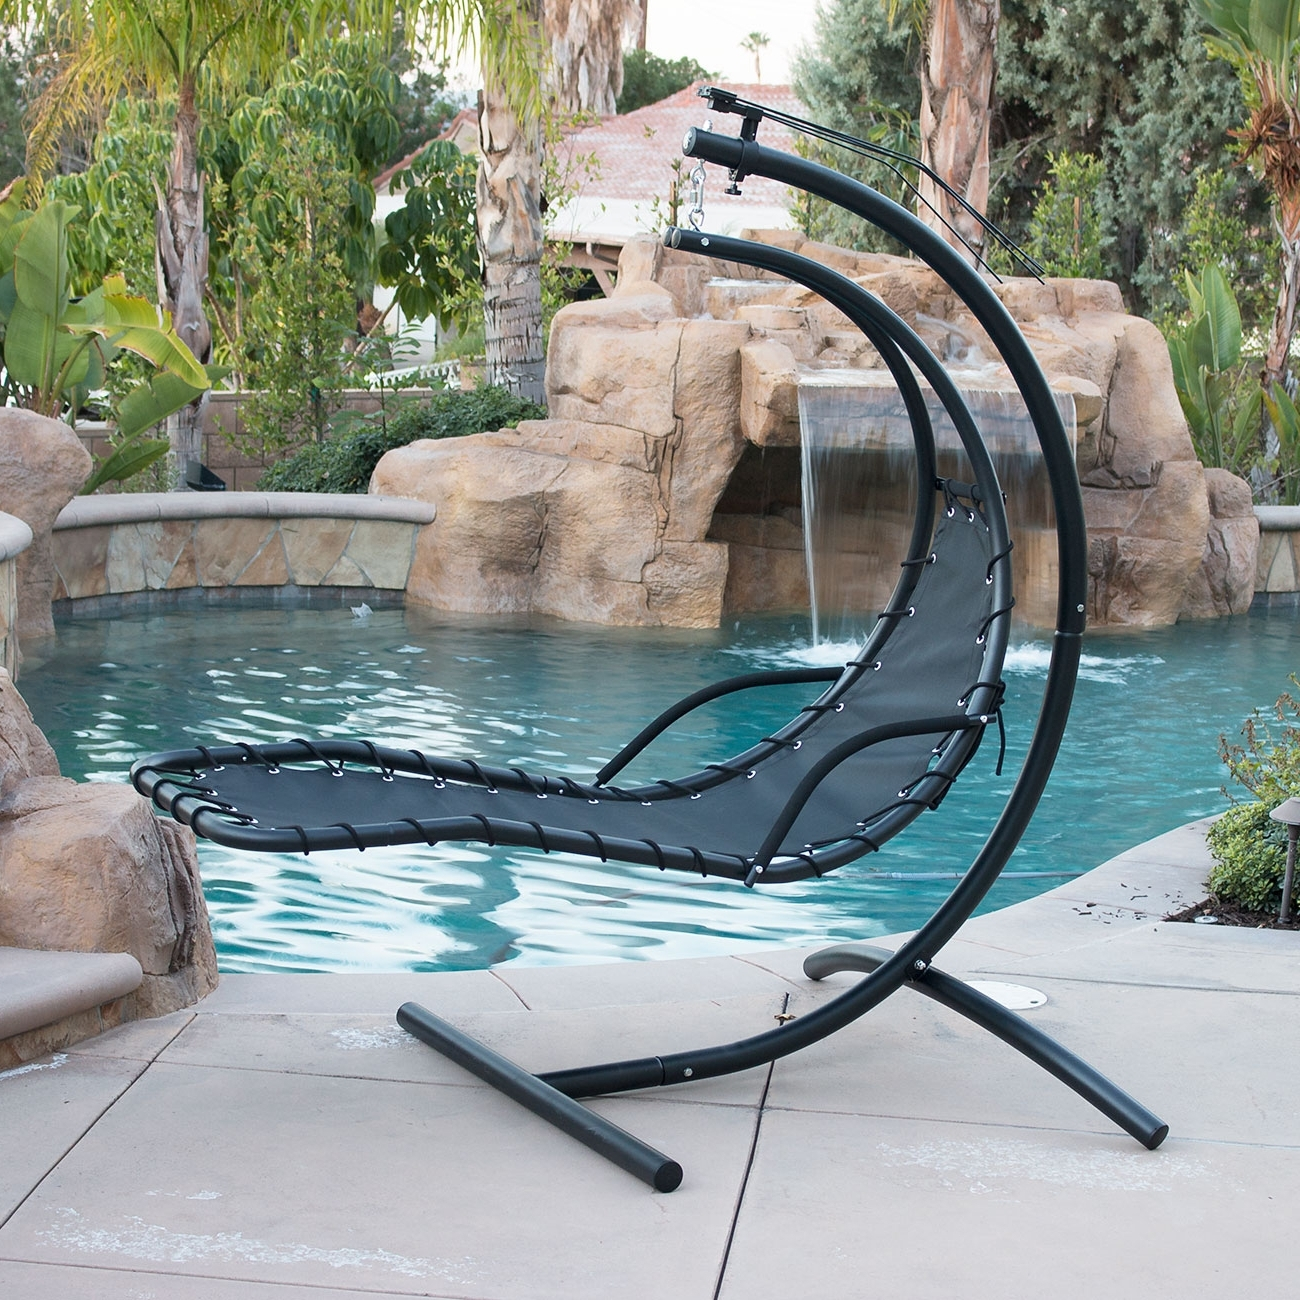 Hanging Chaise Lounge Chairs Intended For Latest Hanging Chaise Lounge Chair • Lounge Chairs Ideas (View 8 of 15)